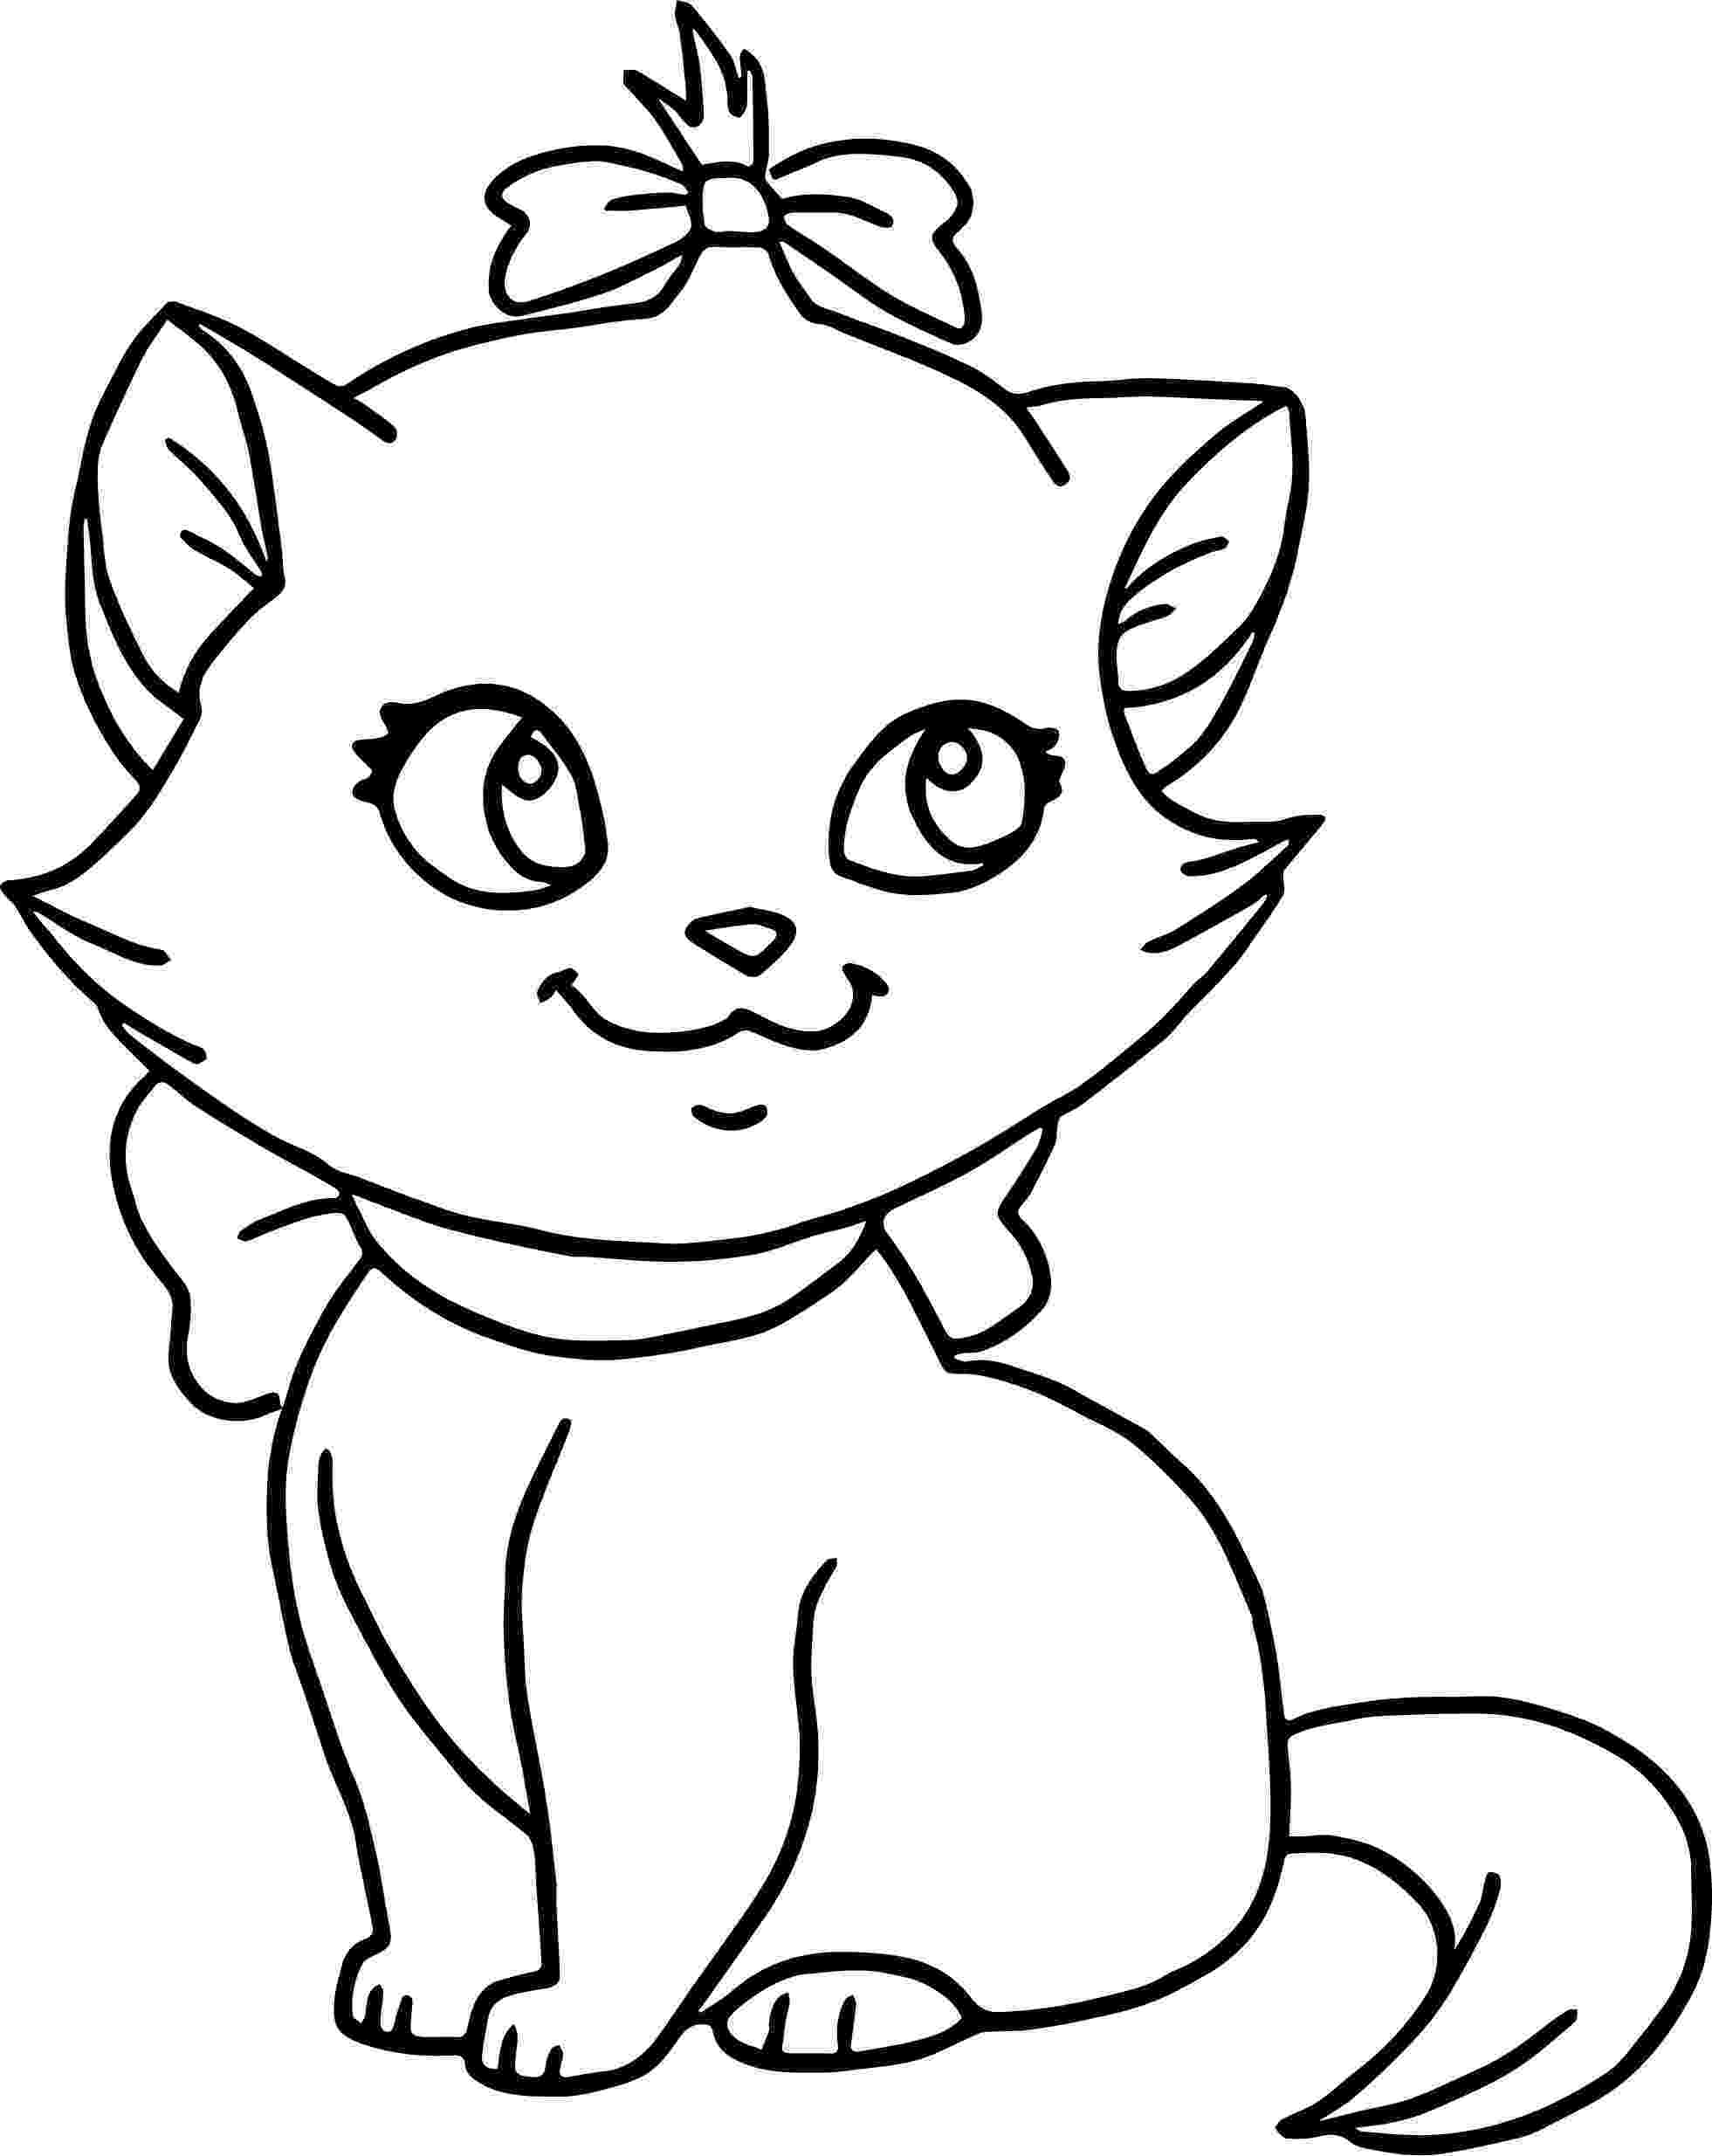 cute kitten colouring pages cute kitten coloring pages getcoloringpagescom kitten colouring cute pages